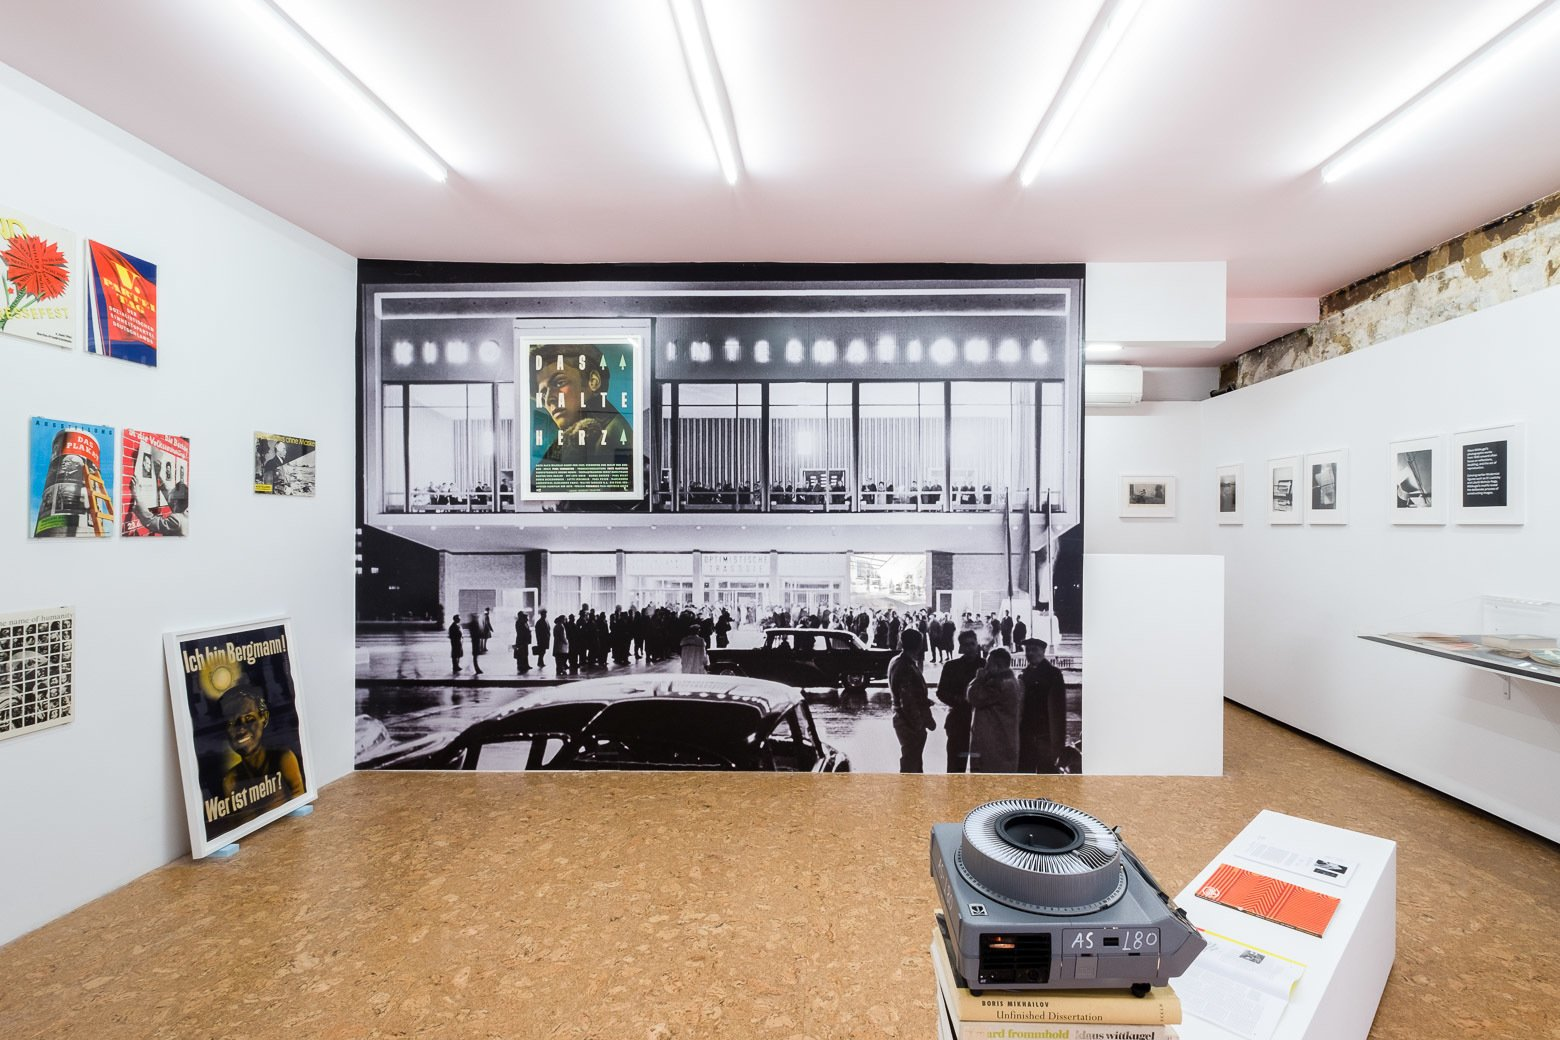 """This view captures the main installation gesture of the exhibition and also what's visible from street level. In his exhibition designs, Klaus Wittkugel often used large-scale panoramas of the city to transport the viewer into another context,"" notes Krishnamurthy. ""Here, I'm turning this display strategy back onto Wittkugel himself. This is an image of Kino International, a modern film theater in East Berlin from 1963. For this architectural icon, Wittkugel designed the signage, including a clever spot to hang a poster as the 'space' in the name of the building. Here, I've blown up a historical image of the façade to room-sized proportions and gone one step further: one of Wittkugel's most striking posters, Das Kalte Herz [The Cold Heart], 1950, hangs framed on top of the building. An analogue slide projector plays a loop of selected images from Wittkugel's exhibition designs, retrospective exhibitions, and architectural commissions, interspersed with contemporary images of those same locations and screenshots of the digital models of my exhibition design that mirror these historical views. Installed as if the spectators out front are watching the projection, this display is the centerpiece of the show.""  Photo 5 of 6 in A Look at Klaus Wittkugel, East Germany's Most Prolific Graphic Designer"